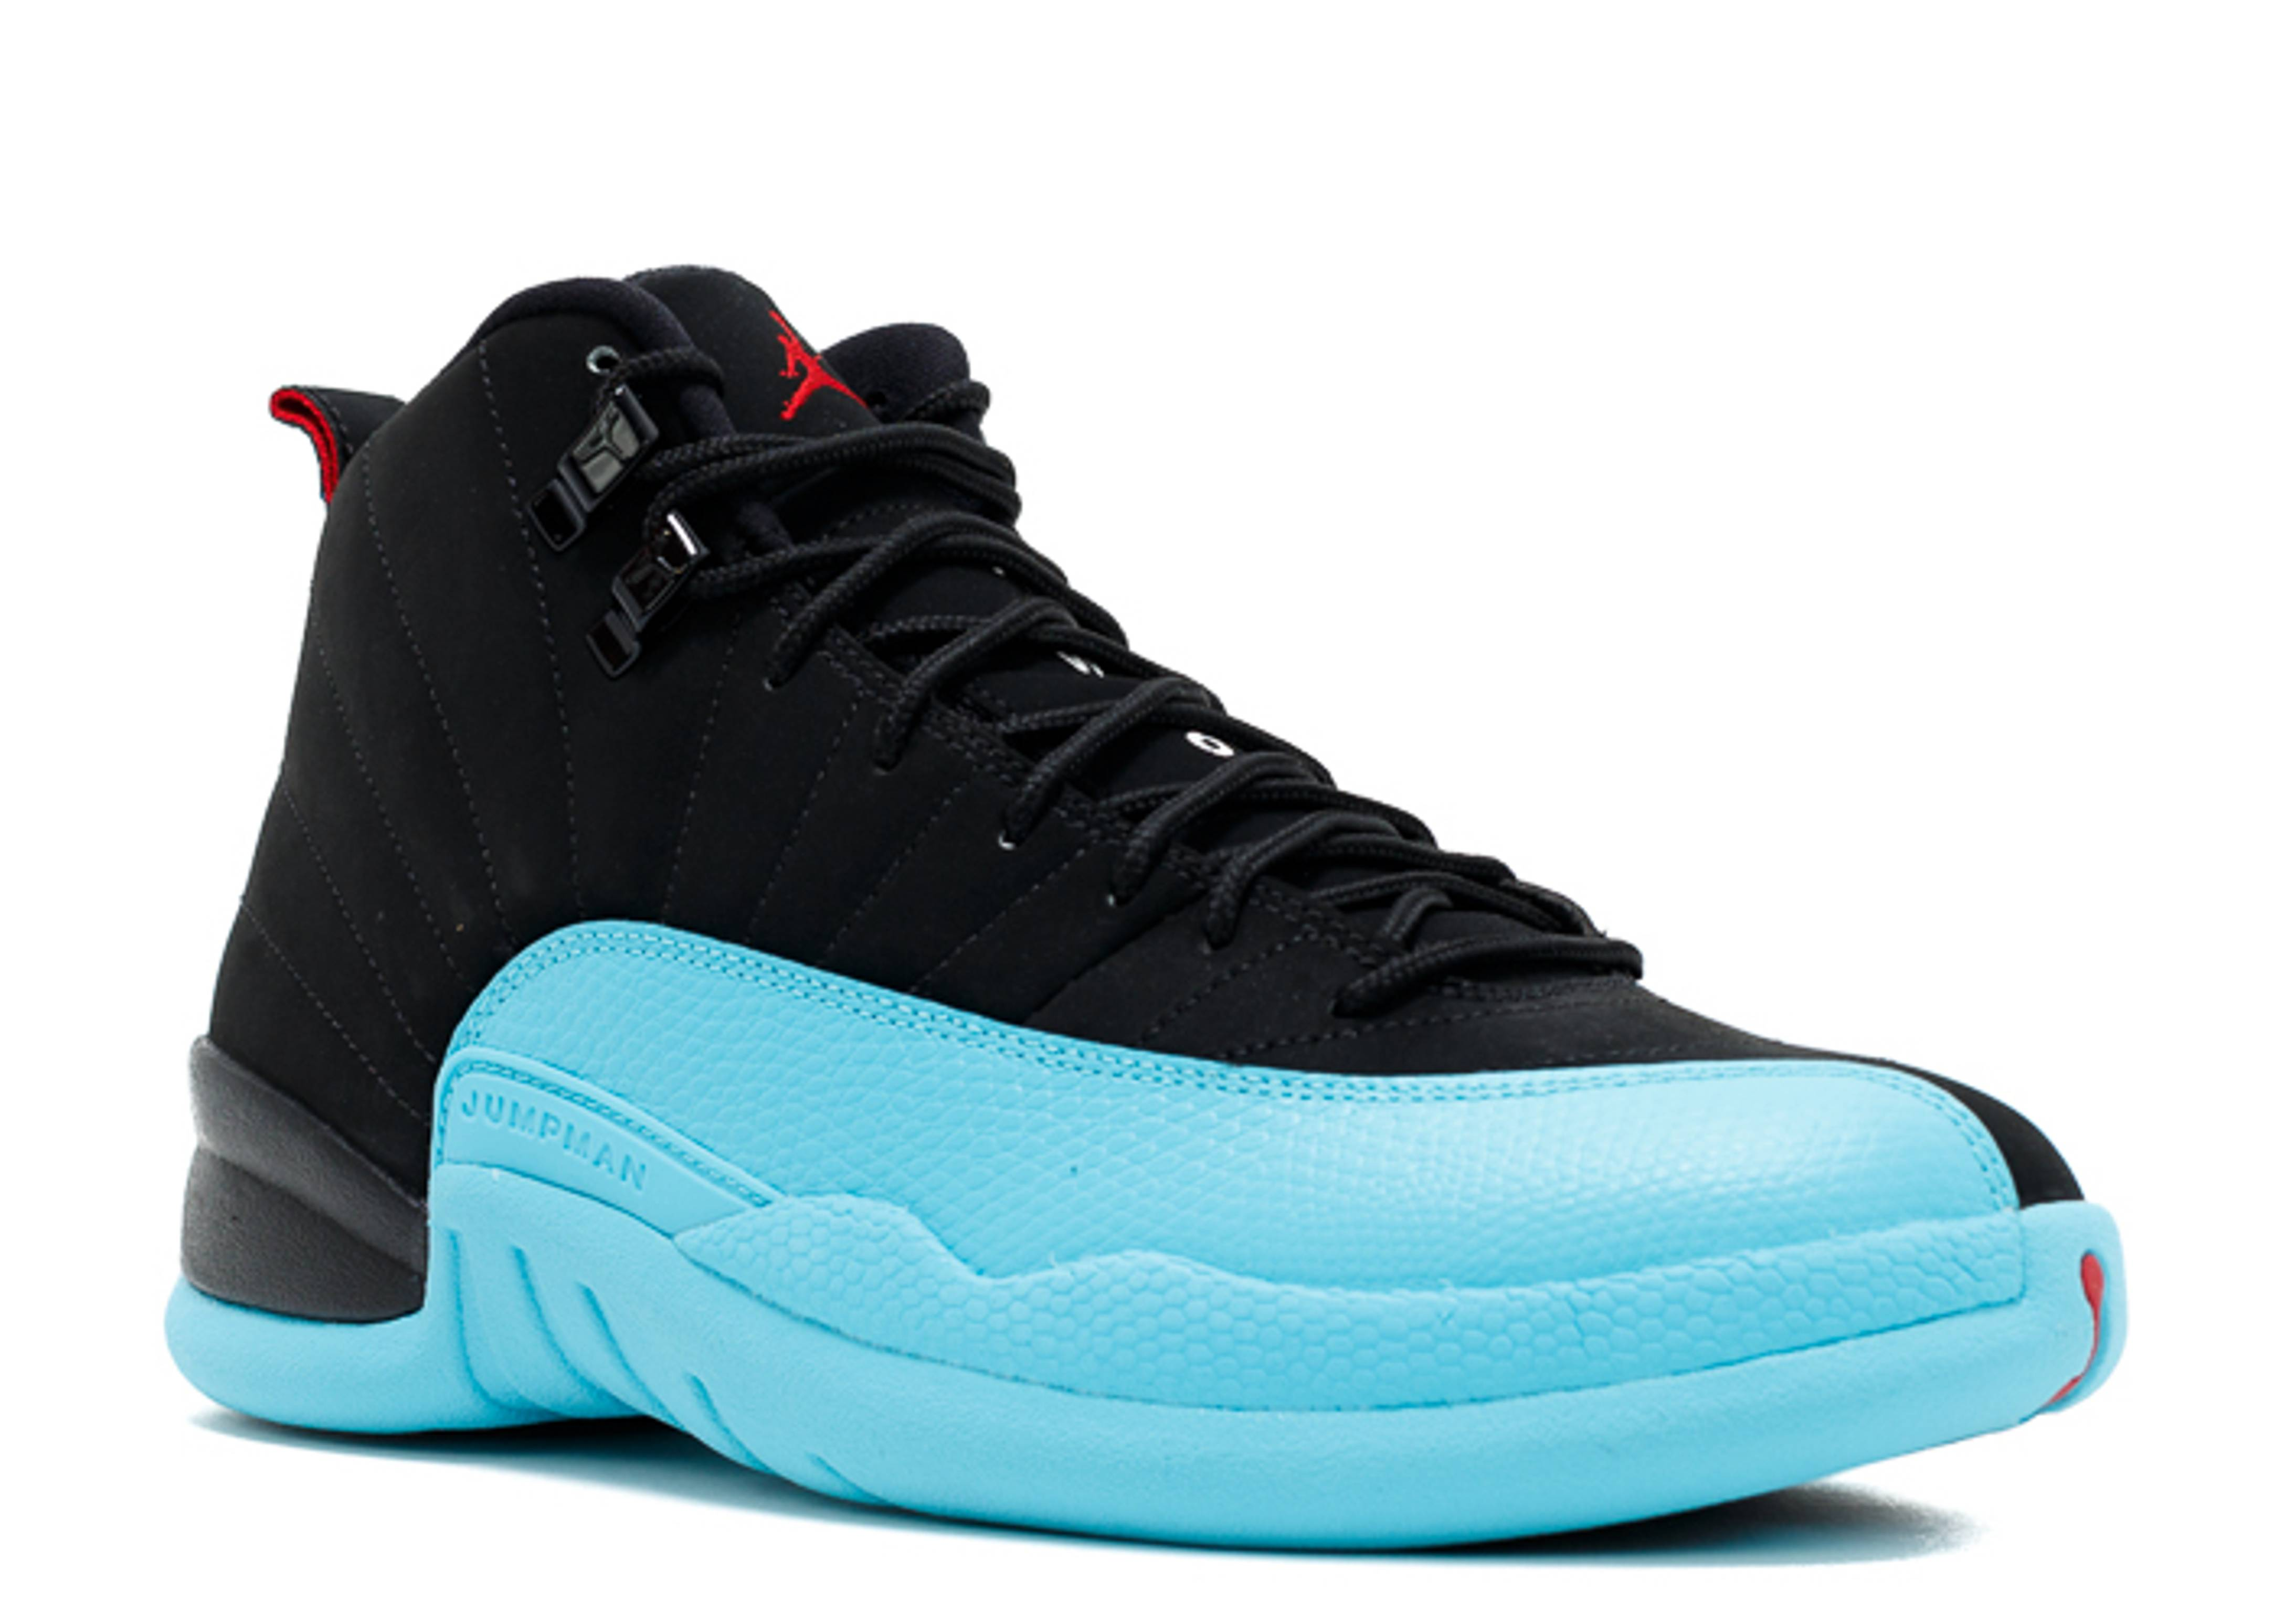 reputable site c2b24 0dd01 ... air jordan retro 14 pink gamma blue . ...